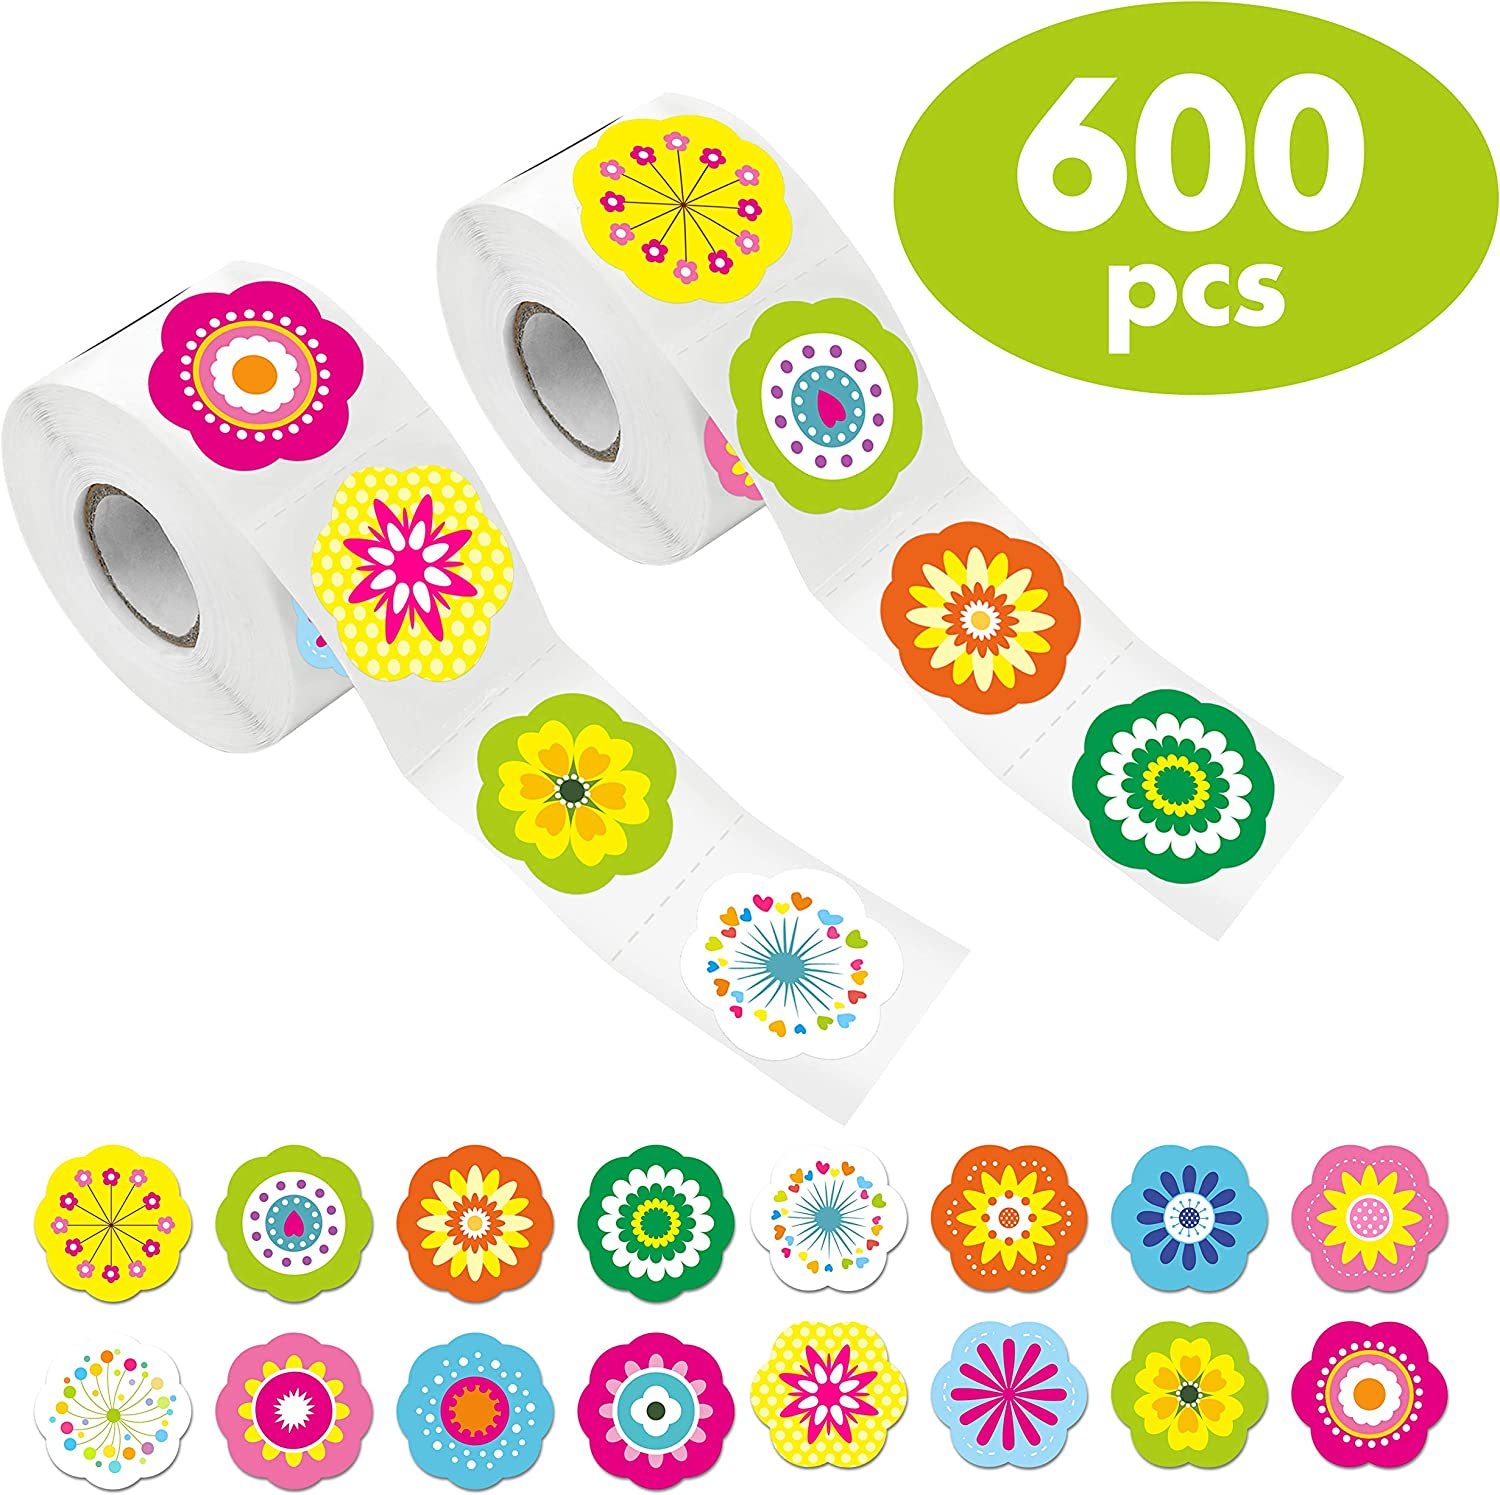 600 PCS Adorable Flower Stickers in 16 Designs with Perforated Line Expanded Version Each Measures 1.5 in Diameter